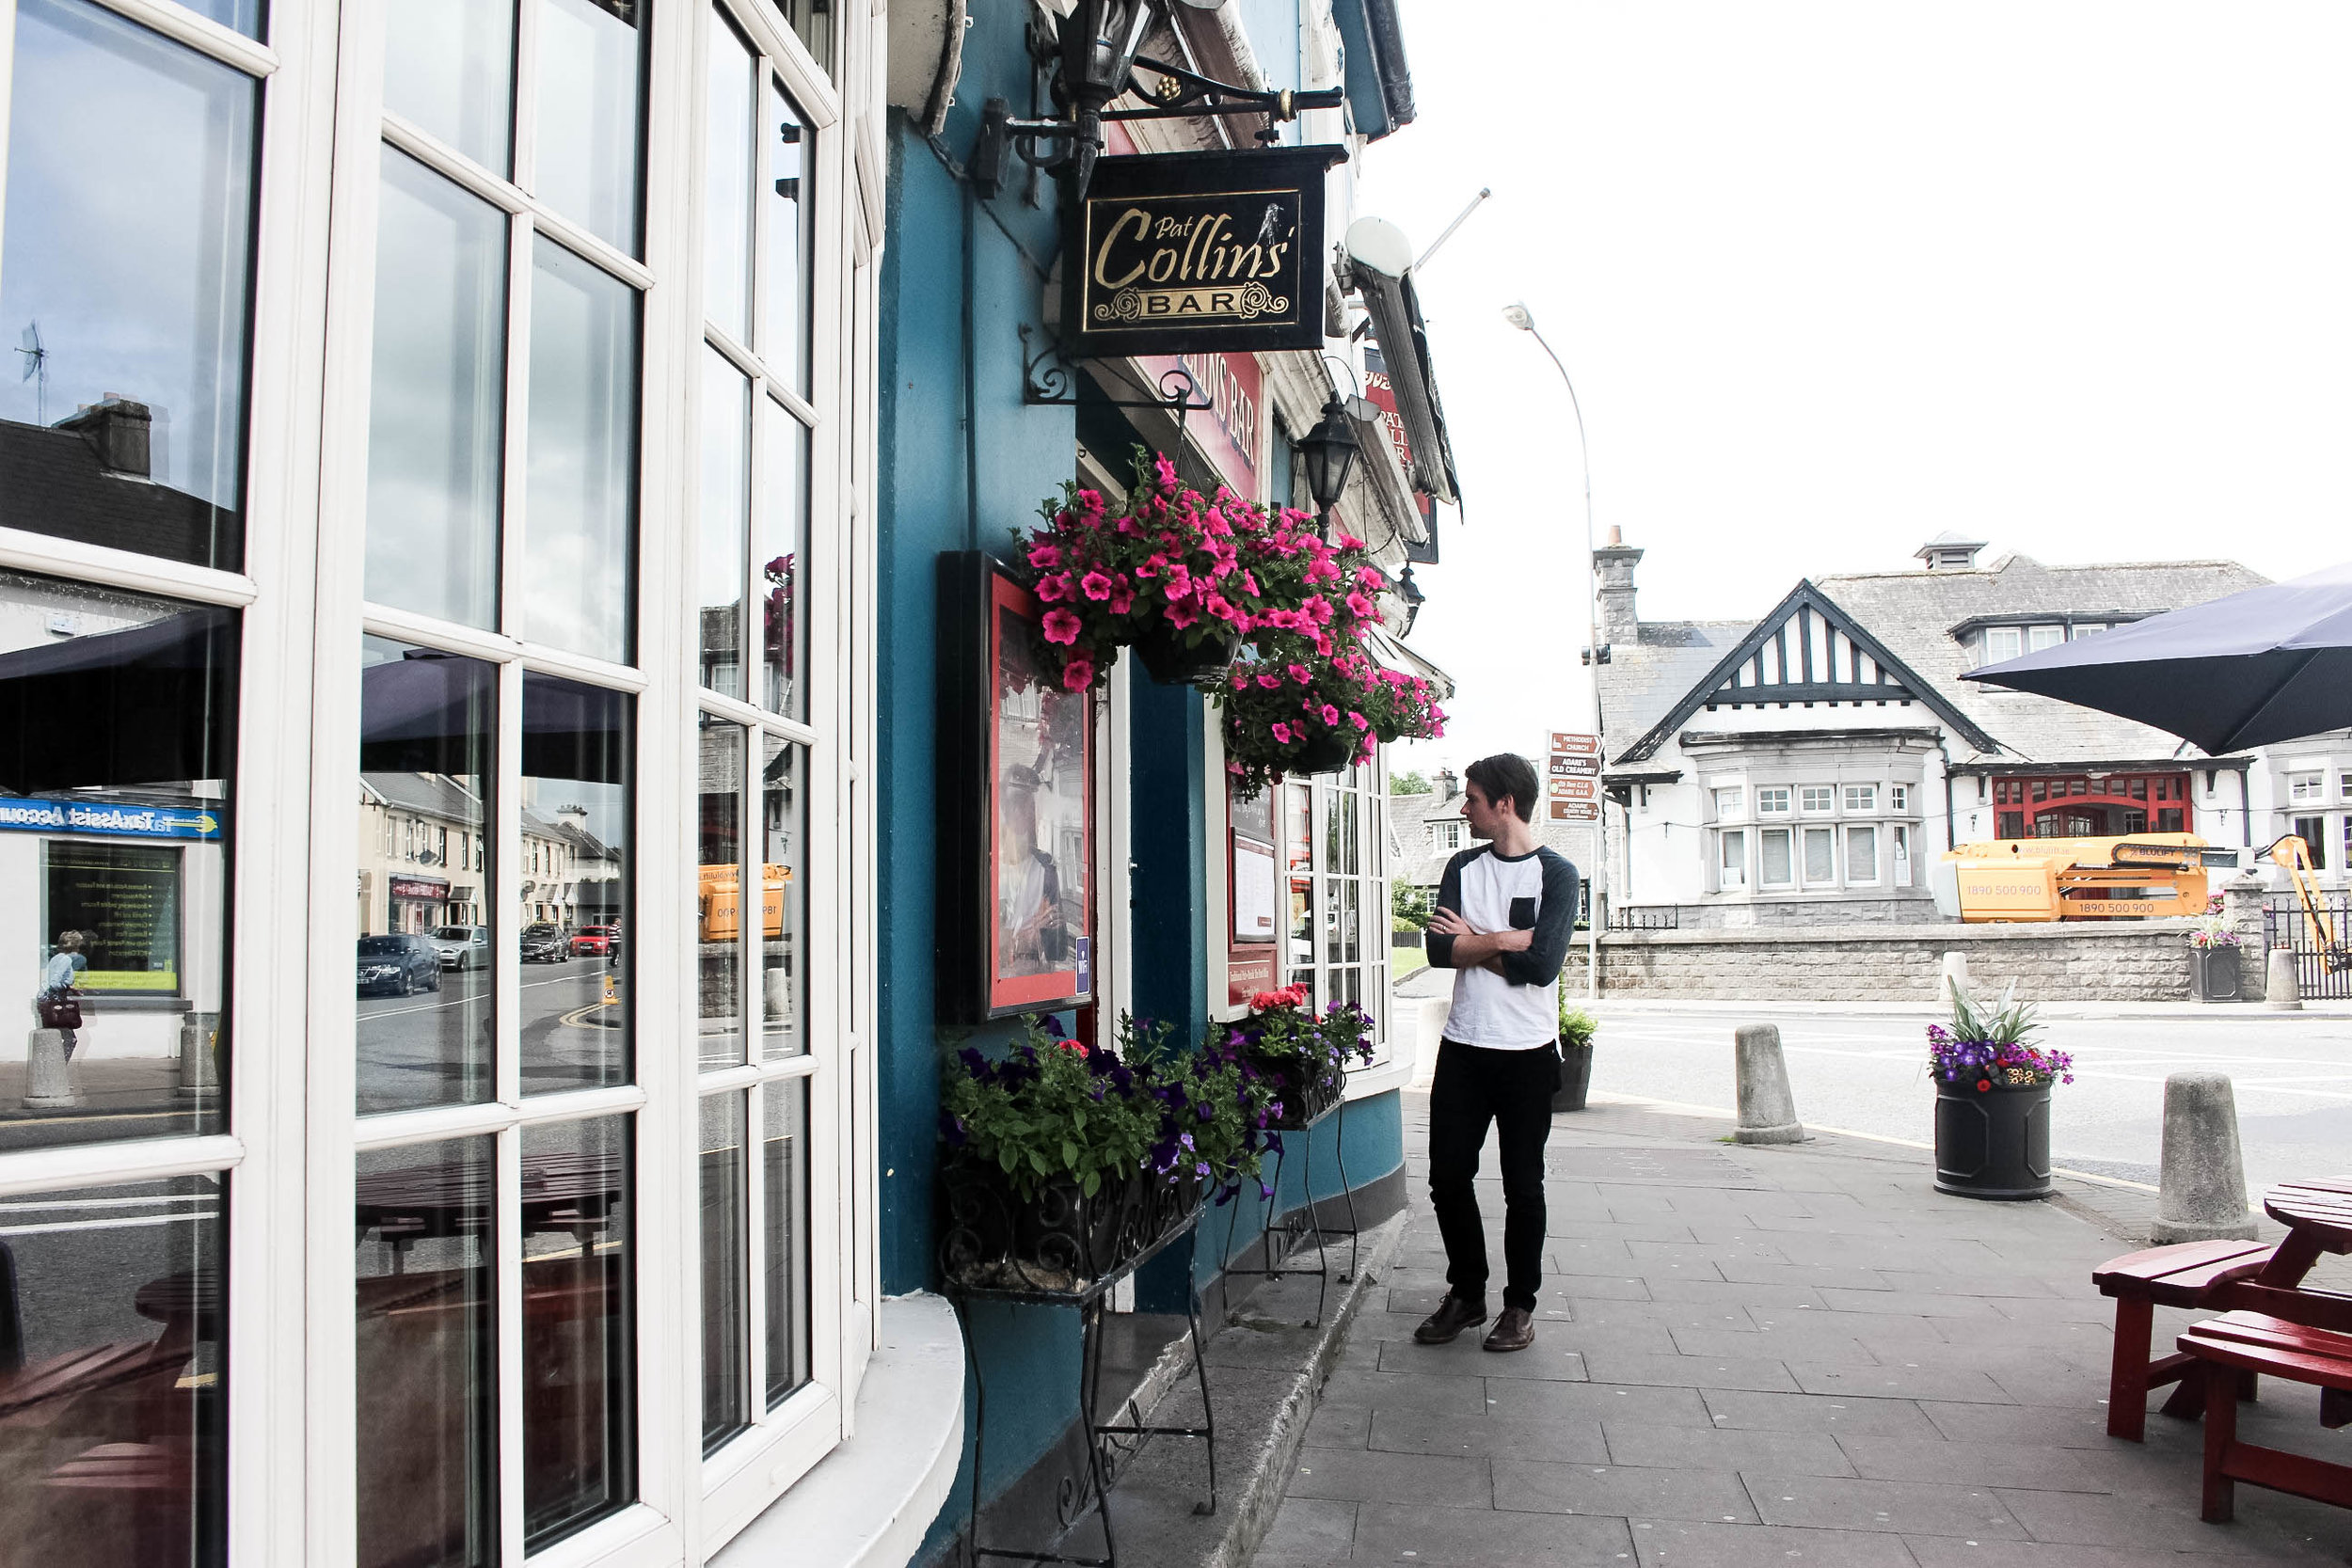 Adare - Ireland's prettiest village known for it's houses with thatched roof - Things to do in Ireland